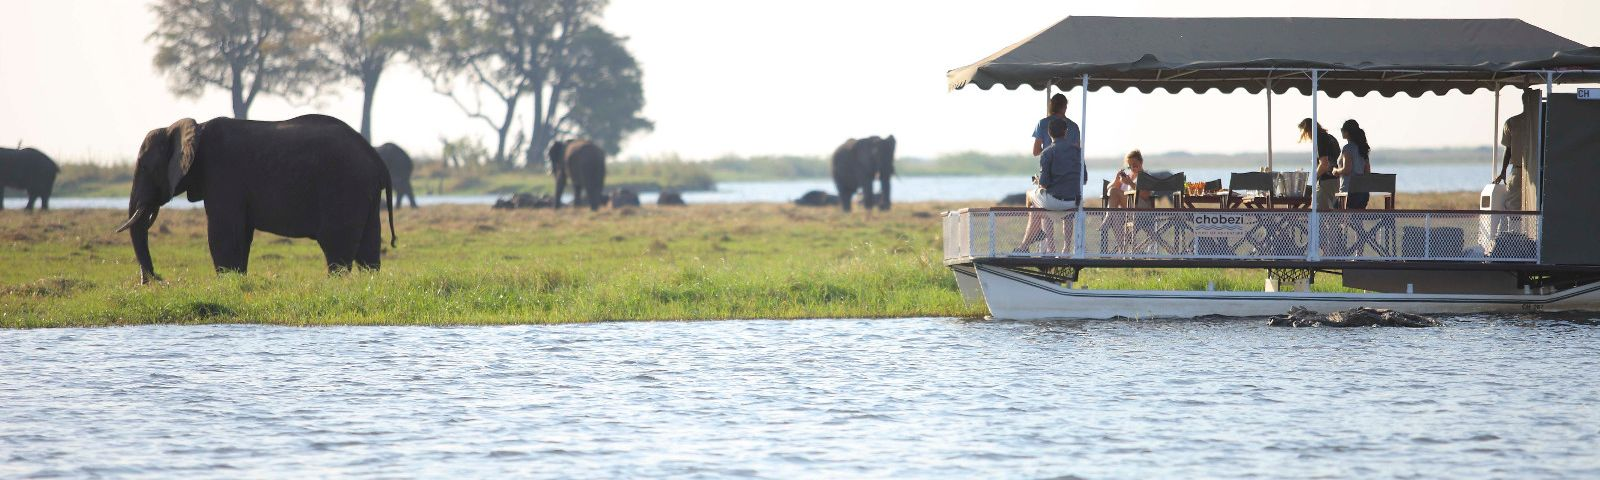 Botswana travel - Top Ten Things to do in Botswana